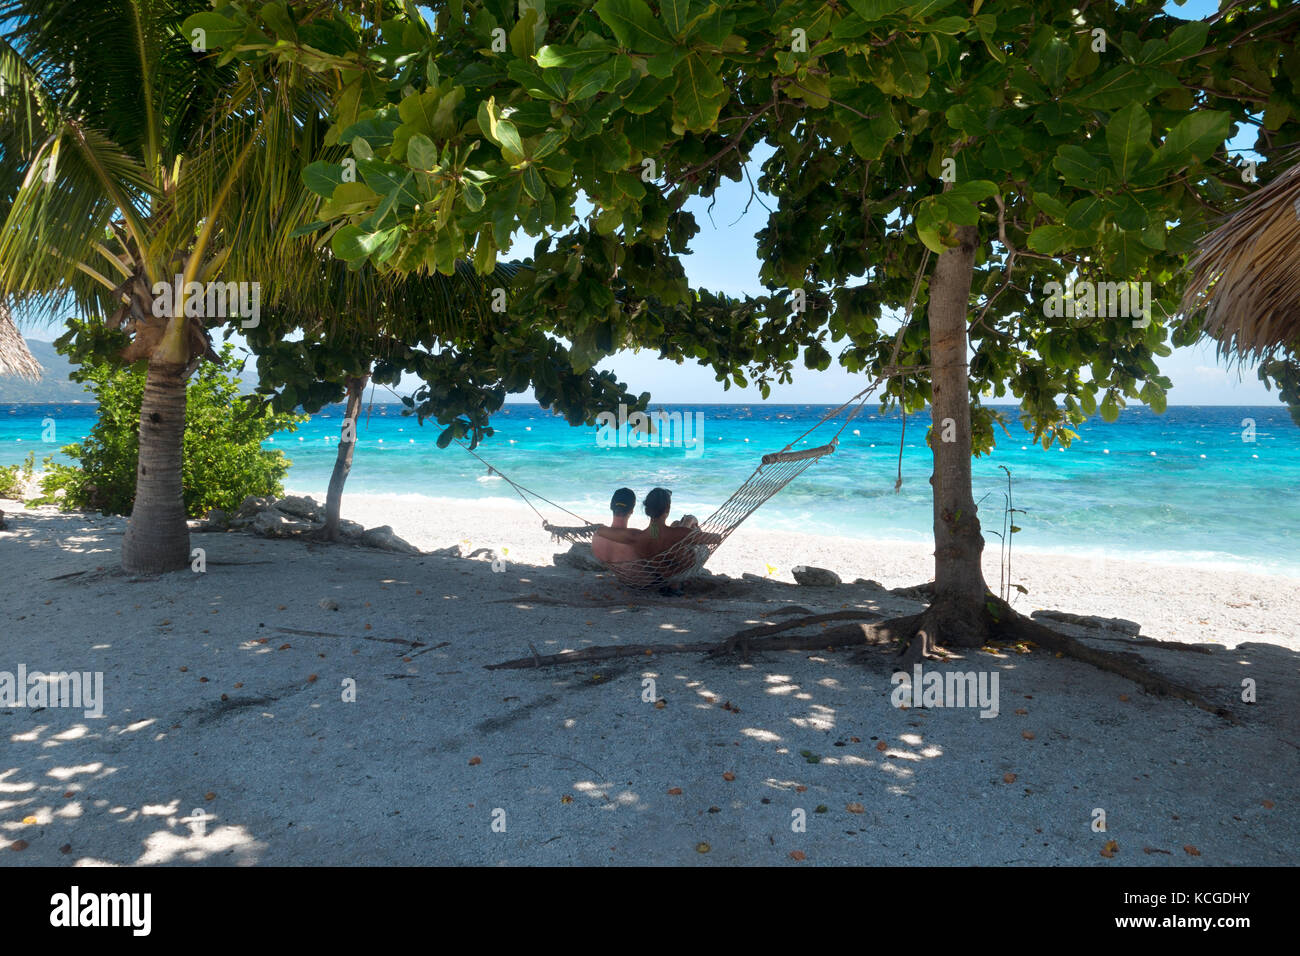 Philippines beach, Cebu island - couple relaxing in a hammock on honeymoon holiday, Cebu, Philippines, Asia - Stock Image